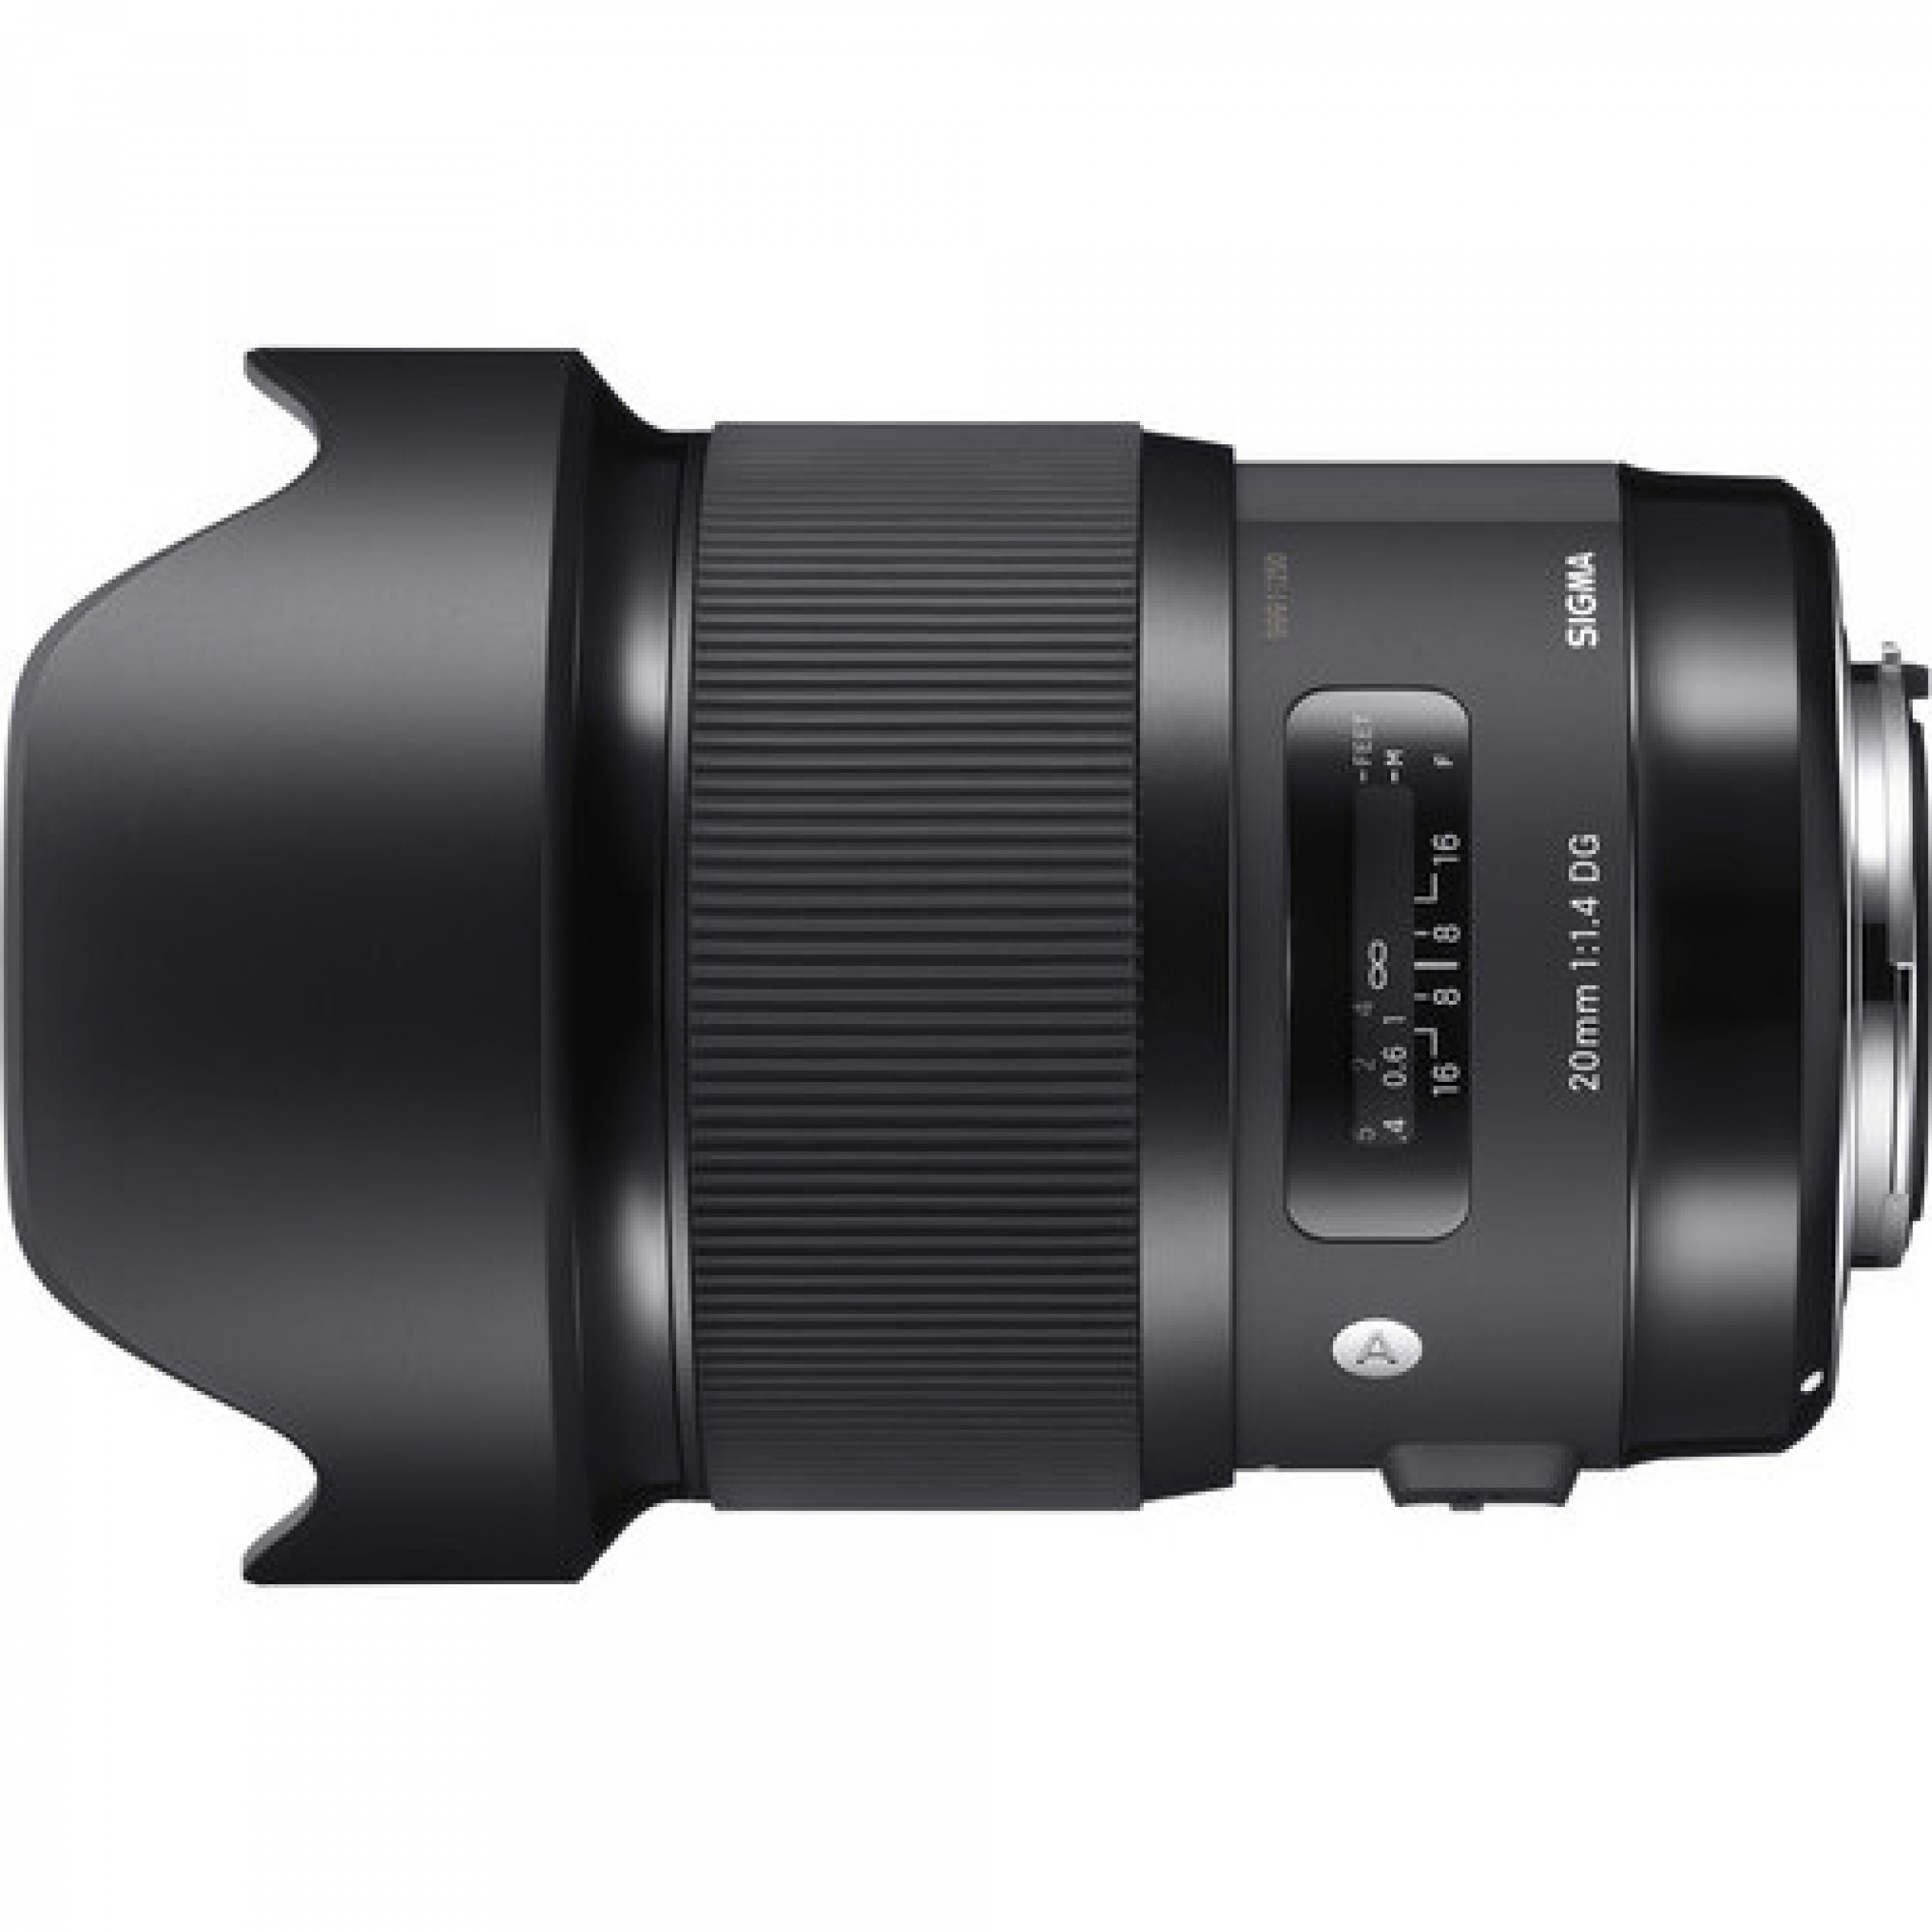 Sigma-20mm-14-Art-Canon-DG-HSM